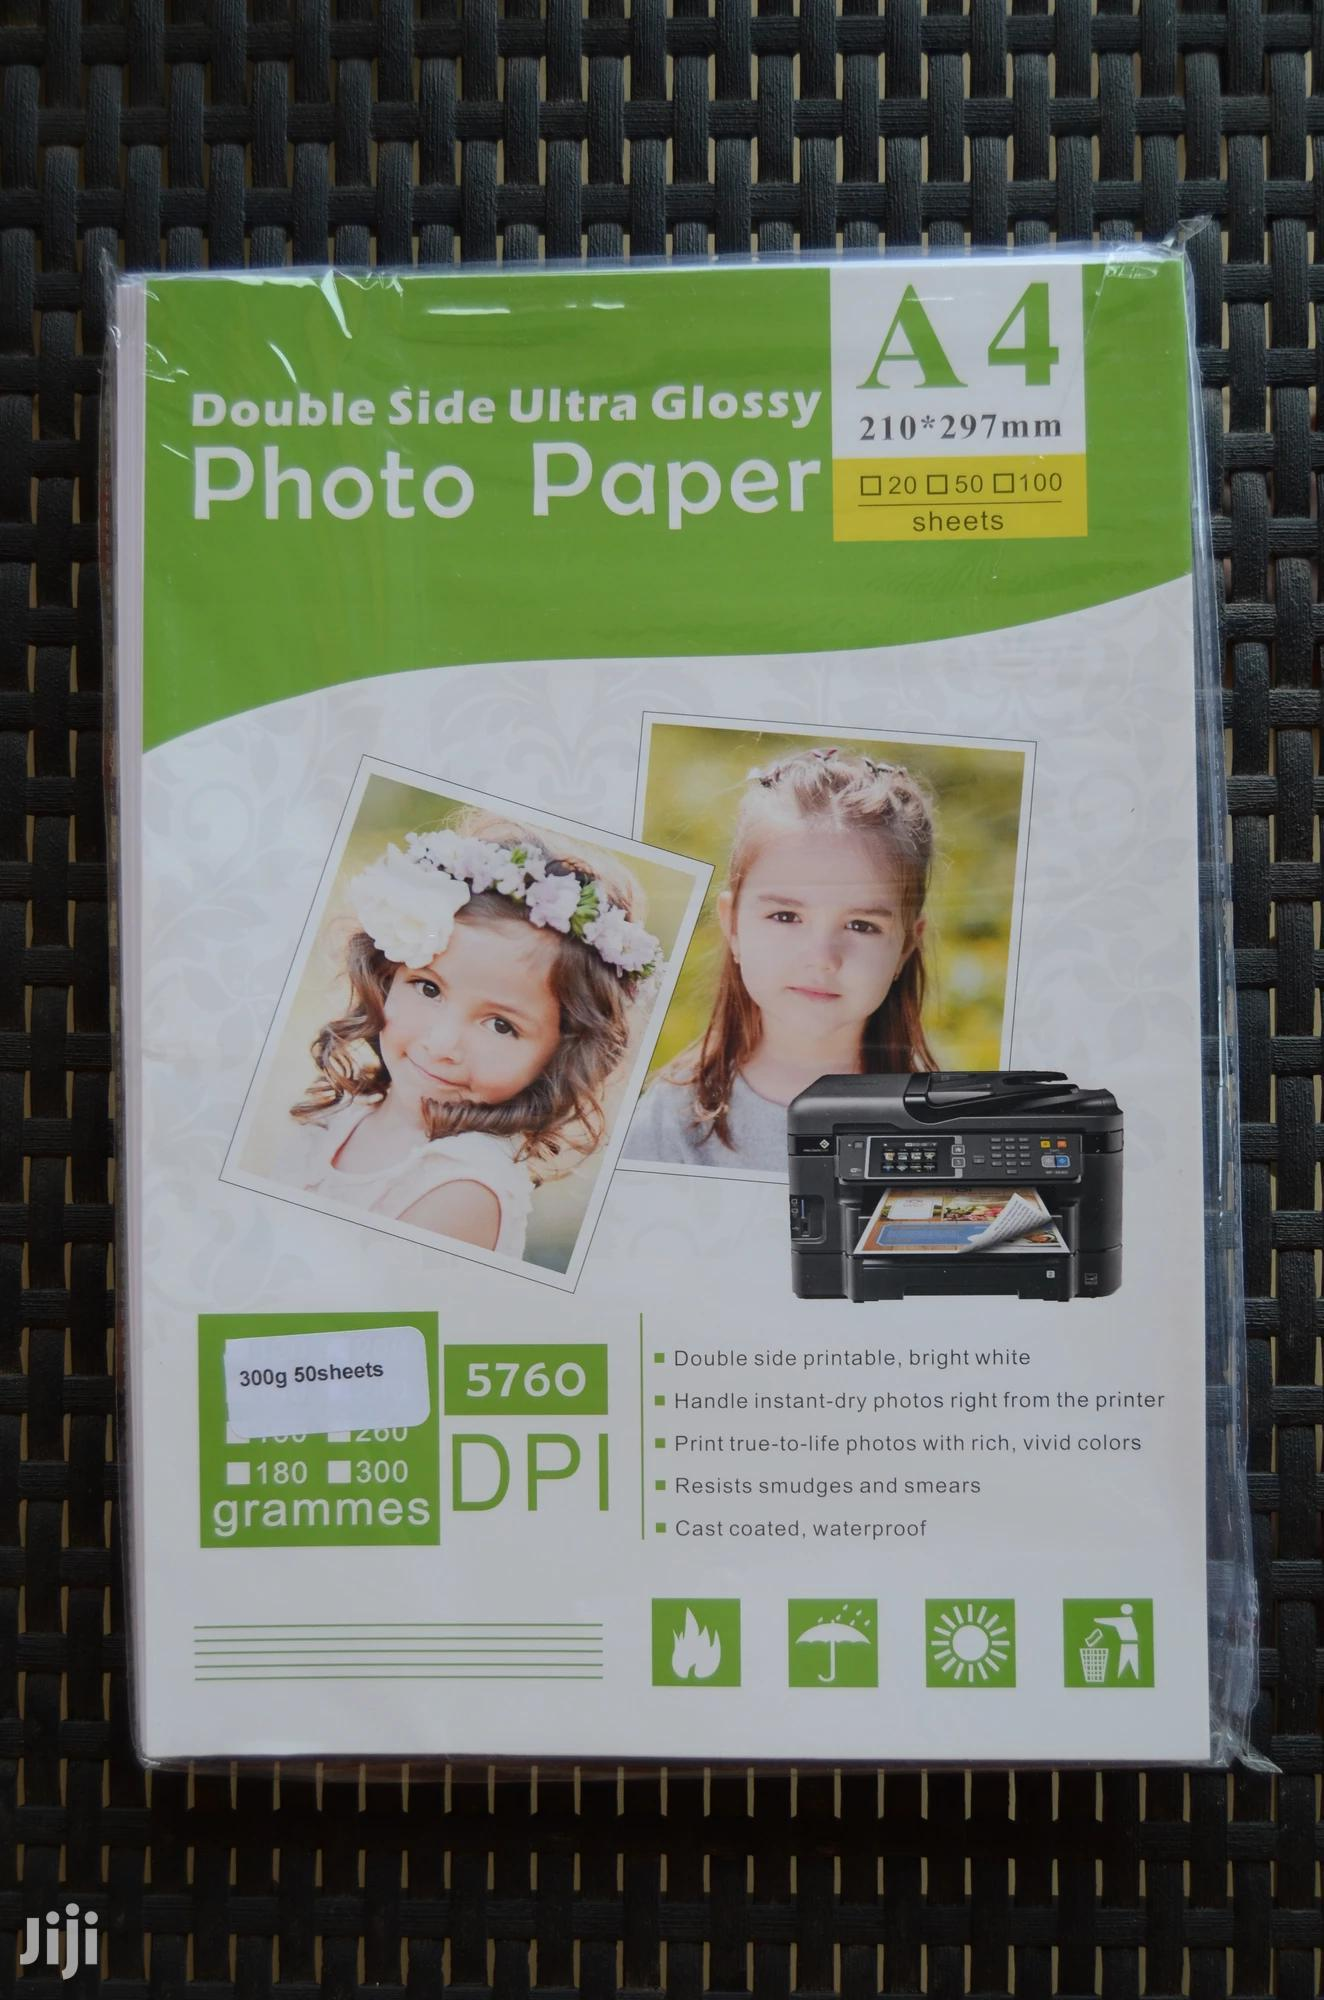 Double-sided Glossy Paper - Epson Printer